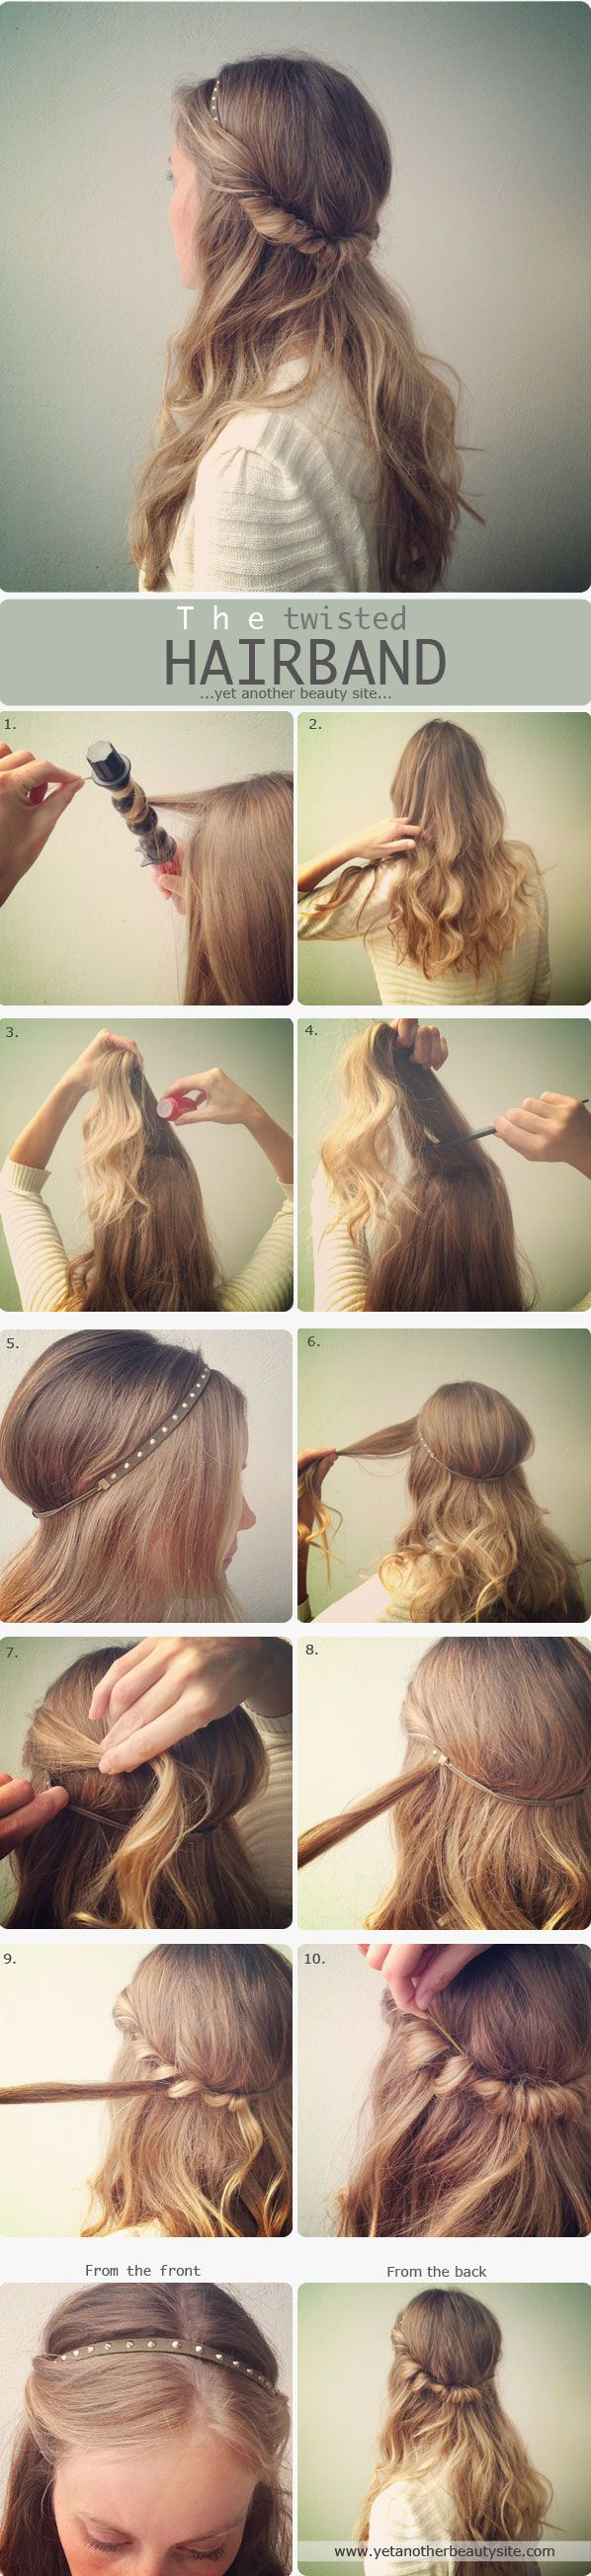 twist hairband